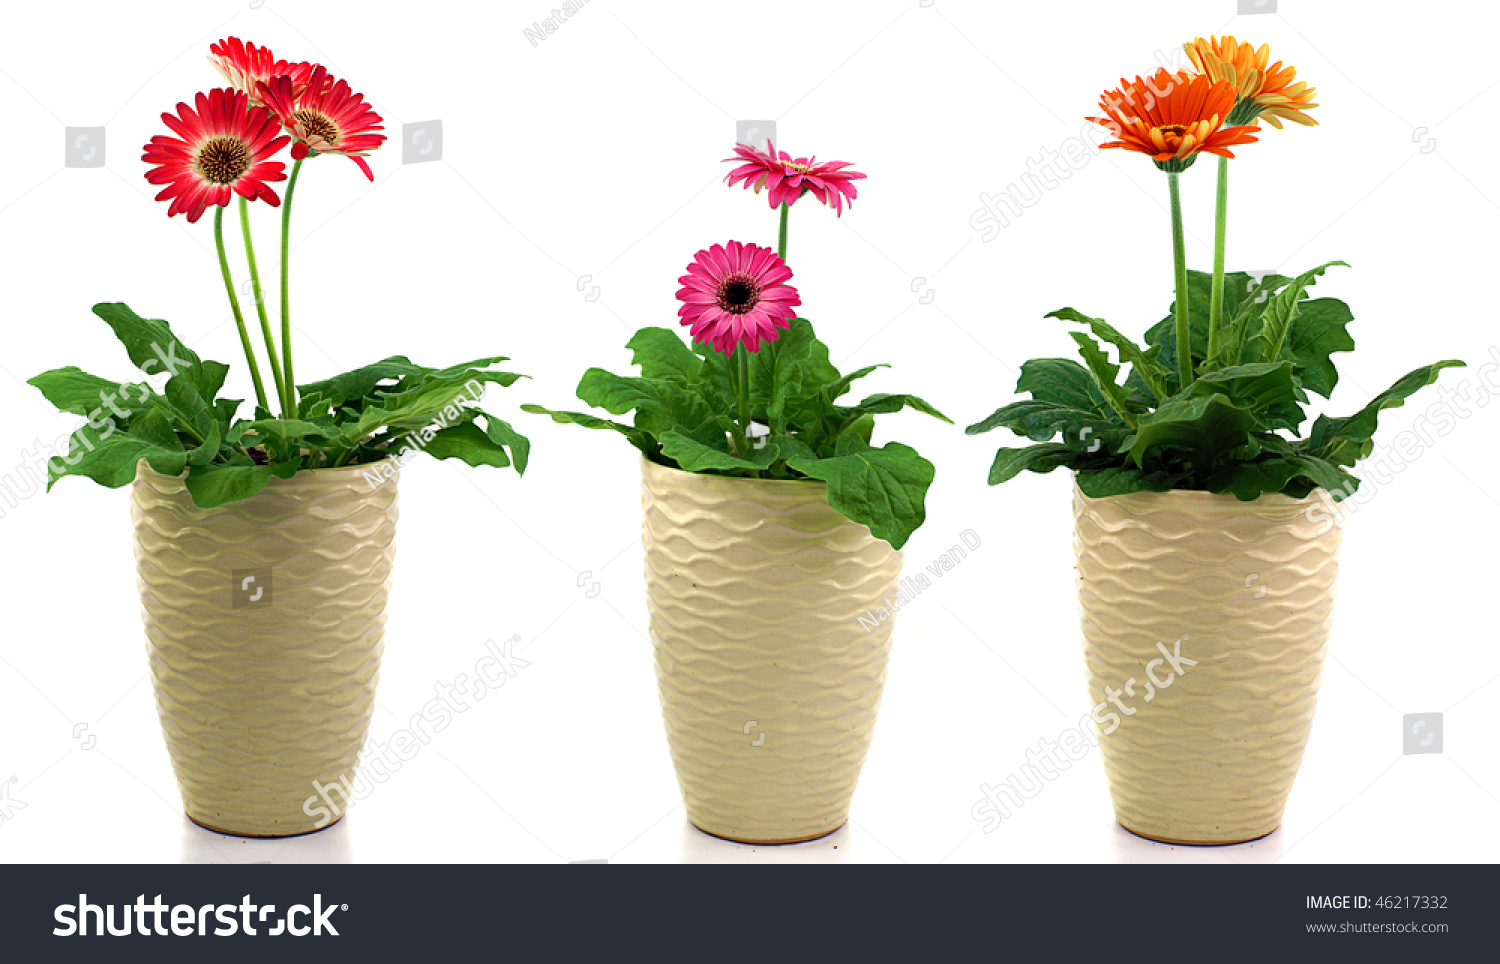 Three pots different gerbera daisy flowers stock photo edit now three pots with different gerbera daisy flowers isolated on white izmirmasajfo